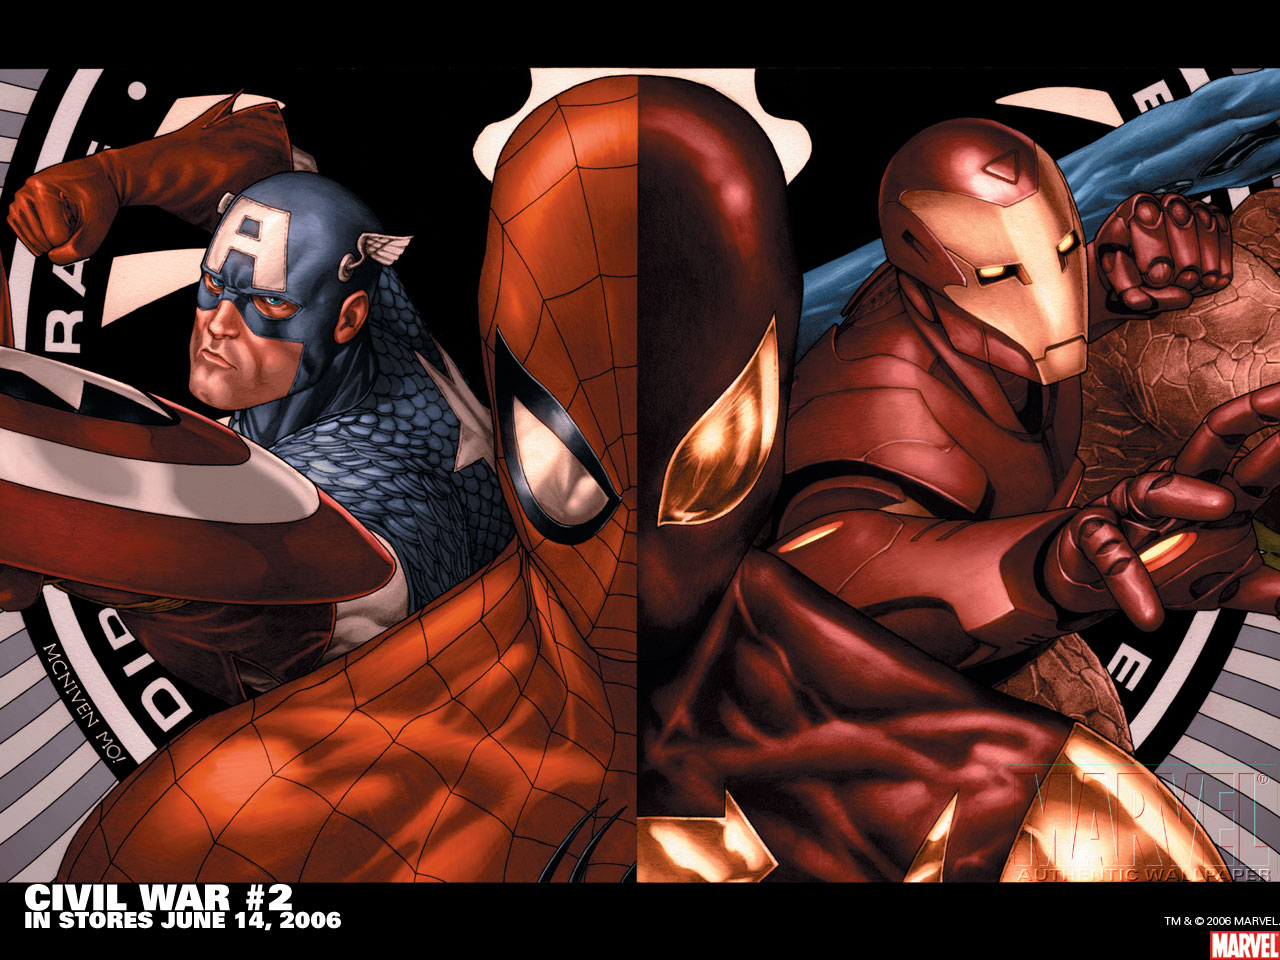 LOS COMICS DE MARVEL COMICS